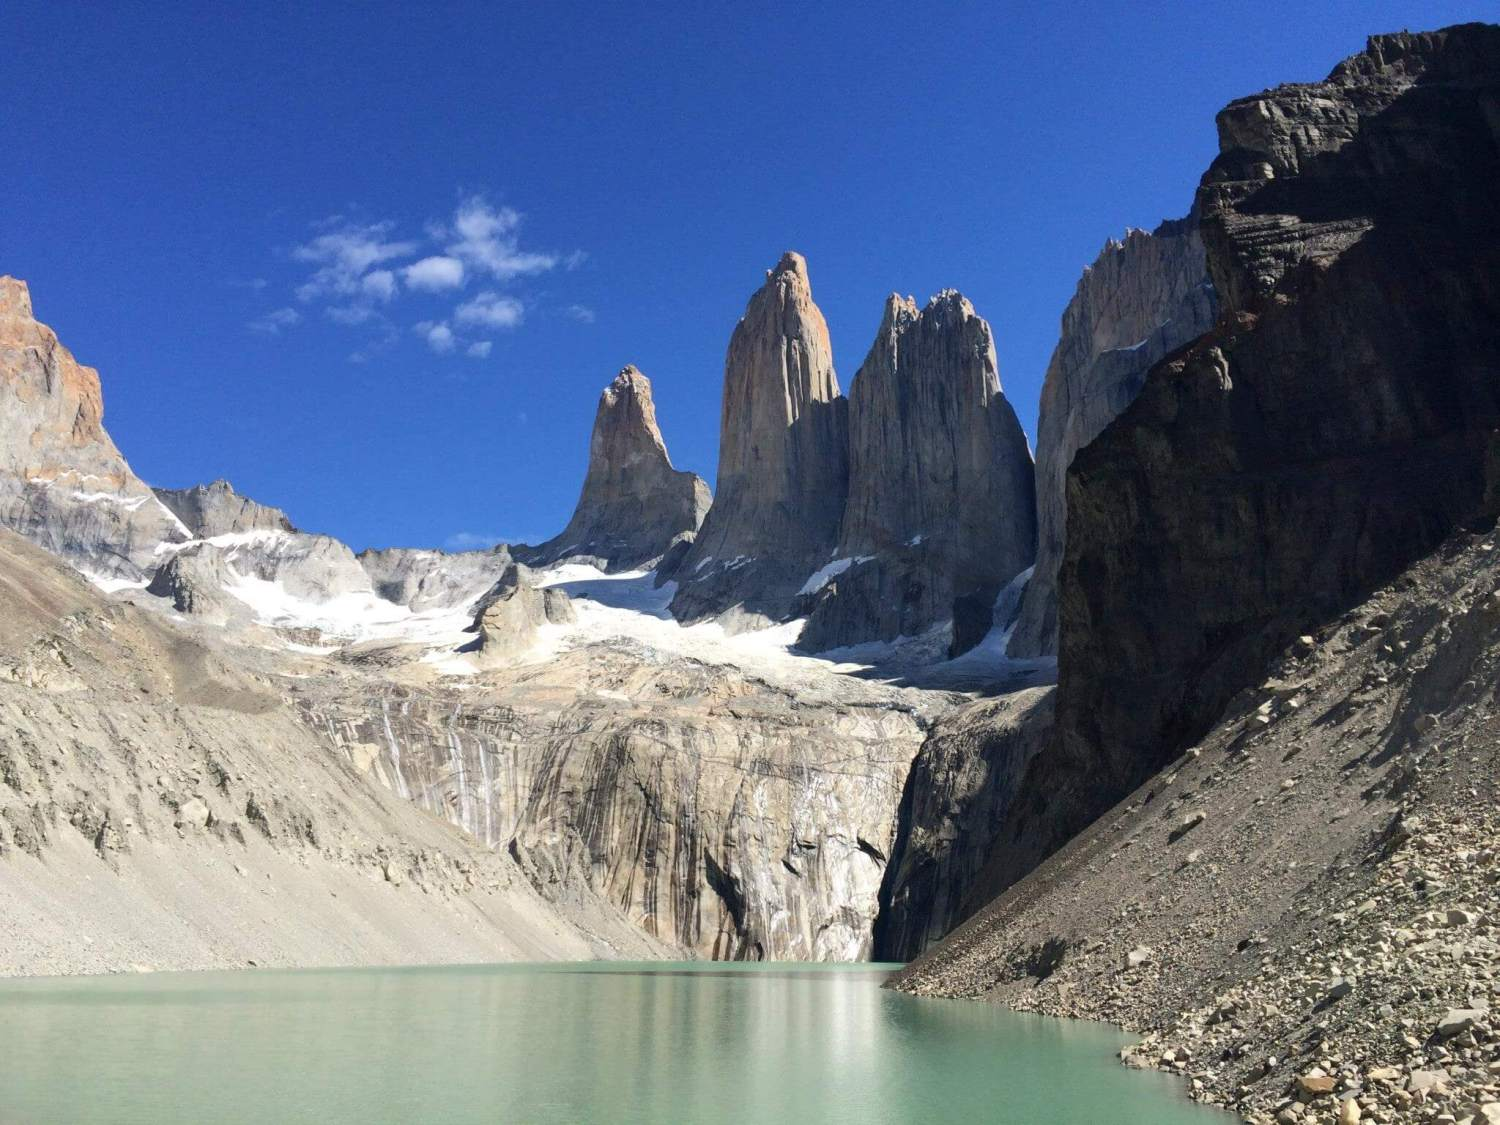 base of the towers, Torres del Paine national park Chile, Paine towers sunny day, clear sky base of towers